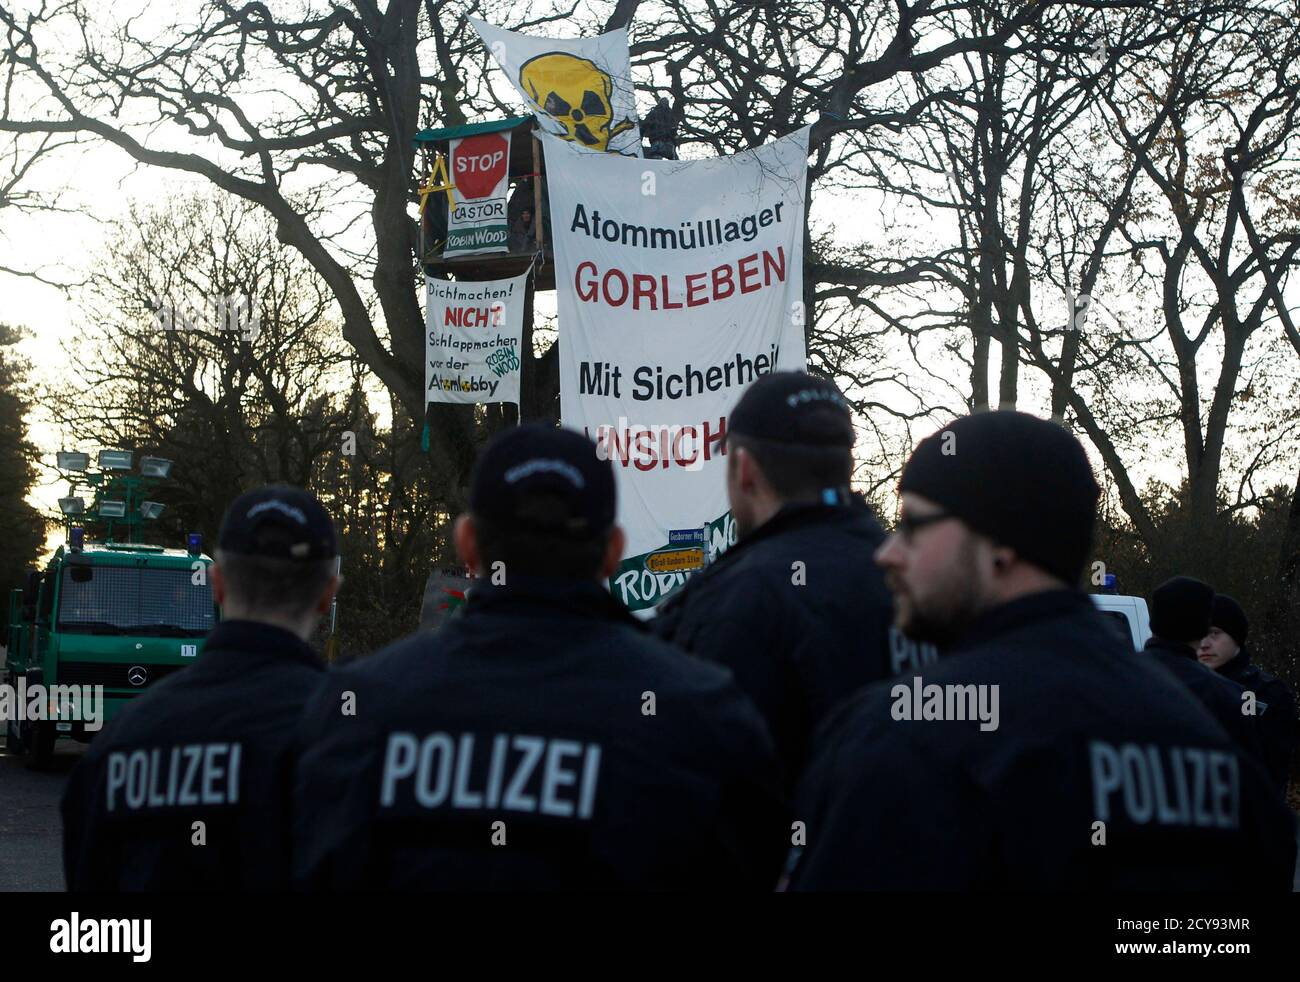 """An activist from the environmental organization Robin Wood observes the police from his tree house in Langendorf near Gorleben November 28, 2011. The controversial shipment of 11 Castor containers with spent German nuclear fuel reprocessed in France, will be loaded onto trucks in Dannenberg before its final transportation to the nearby intermediate storage facility in the northern Germany village of Gorleben. The banner reads: """"Radioactive waste storage Gorleben is not safe"""". REUTERS/Alex Domanski (GERMANY - Tags: ENVIRONMENT POLITICS CIVIL UNREST) Foto Stock"""